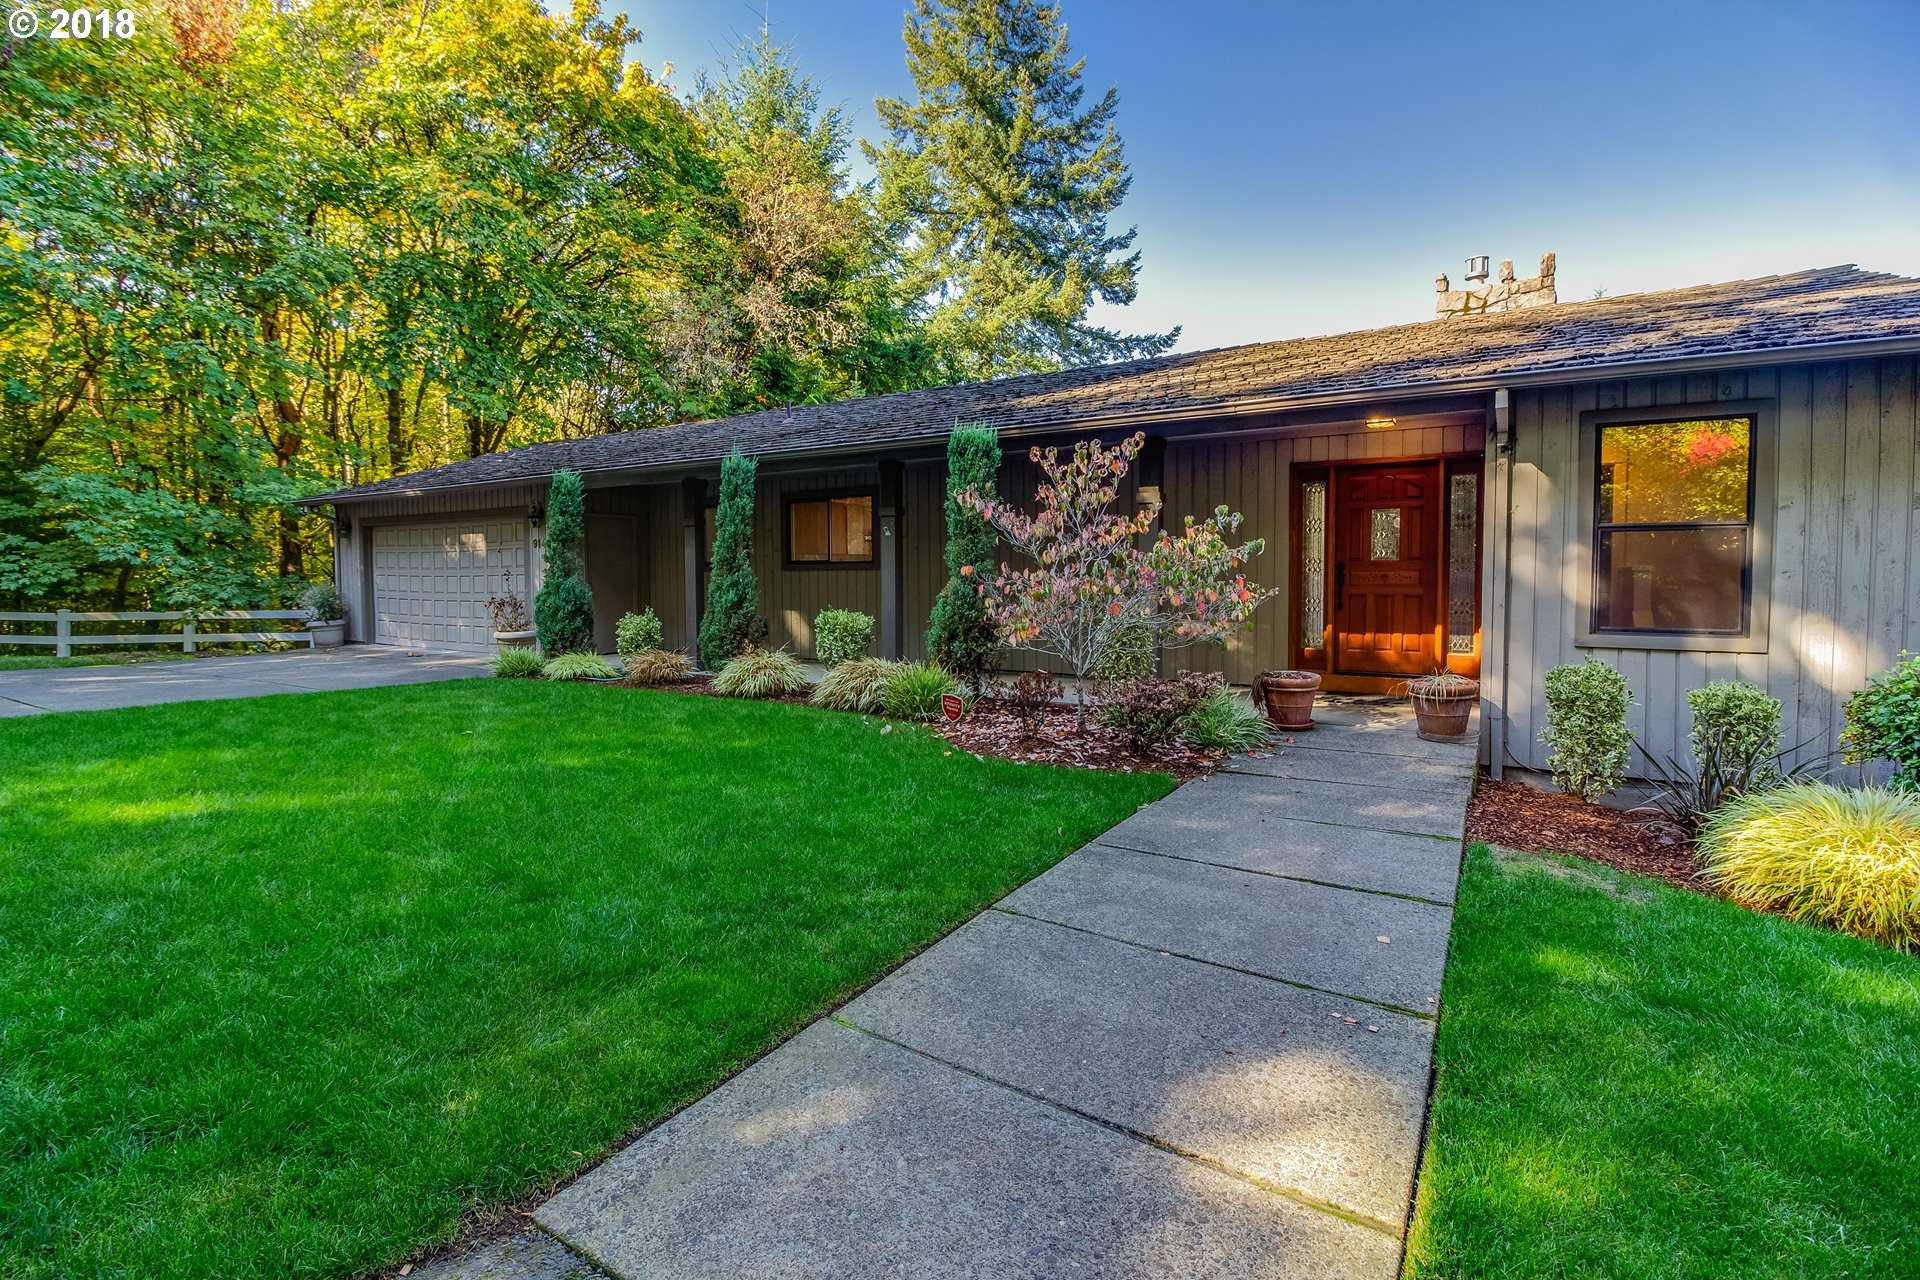 $799,960 - 5Br/6Ba -  for Sale in Mountain View Heights, Beaverton